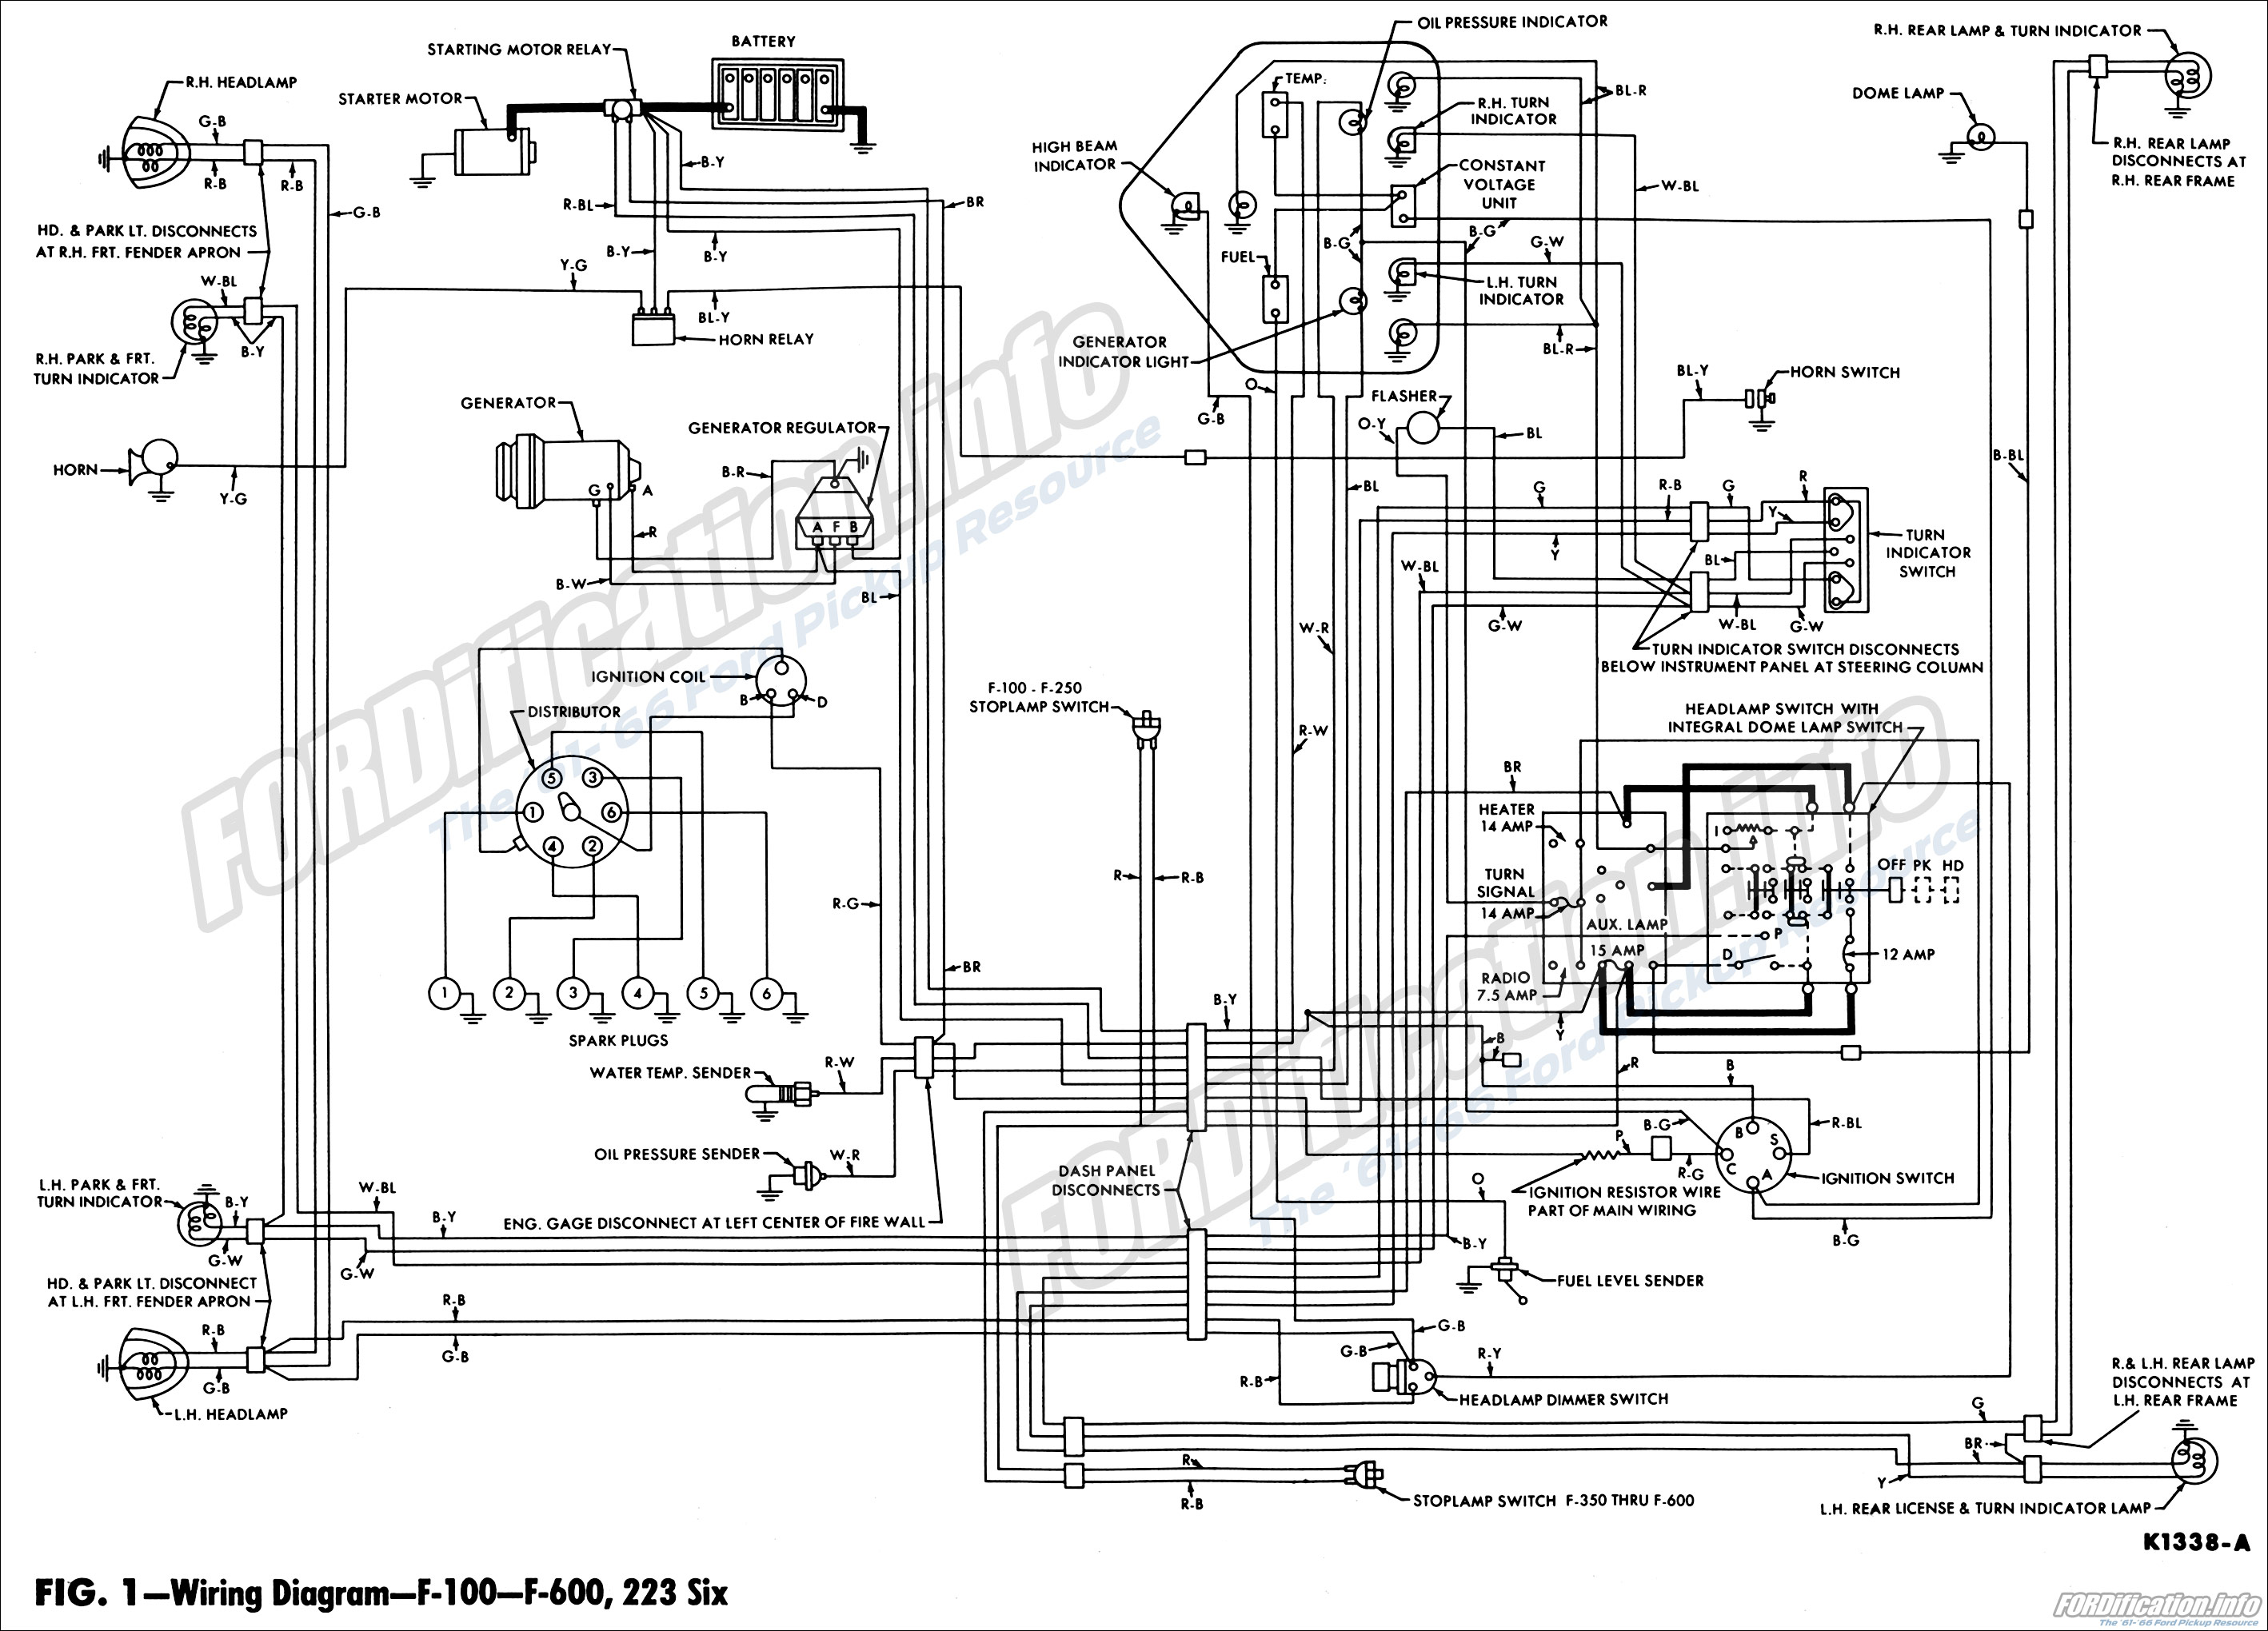 1994 ford econoline radio wiring diagram yamaha outboard ignition 1961 24 images